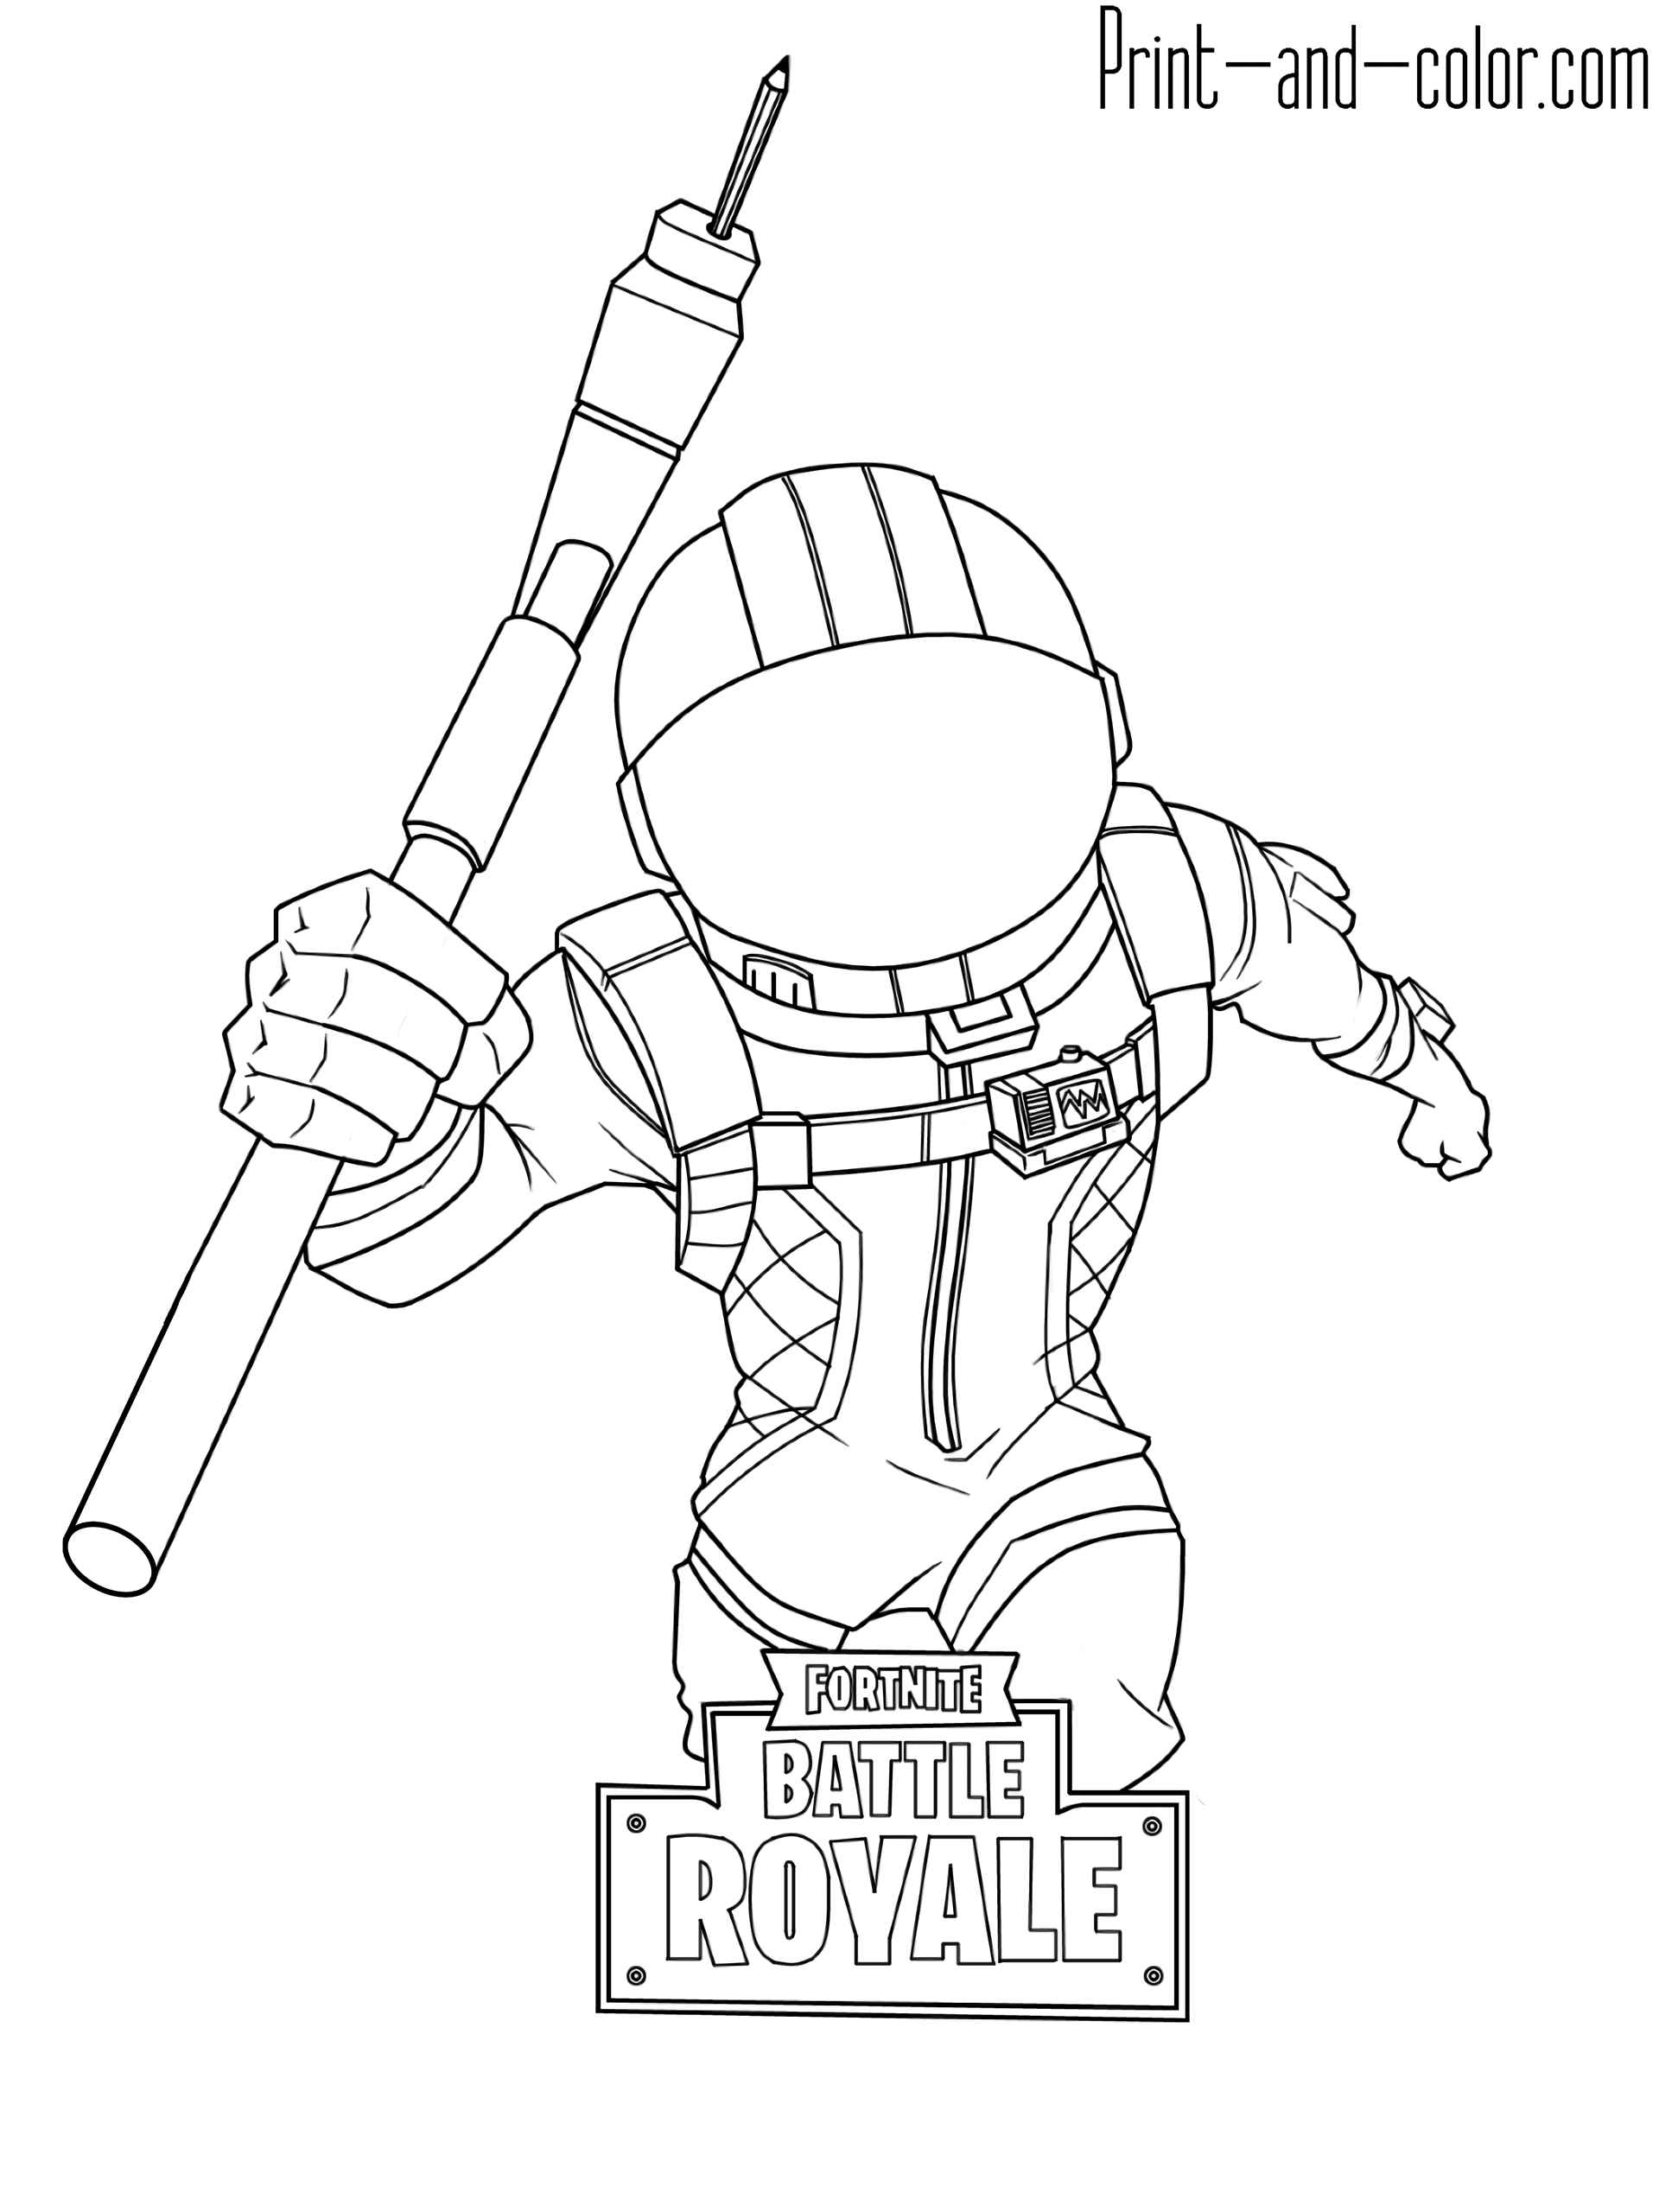 Coloring Sheet Attacking Astronaut Skin From The Game Fortnite